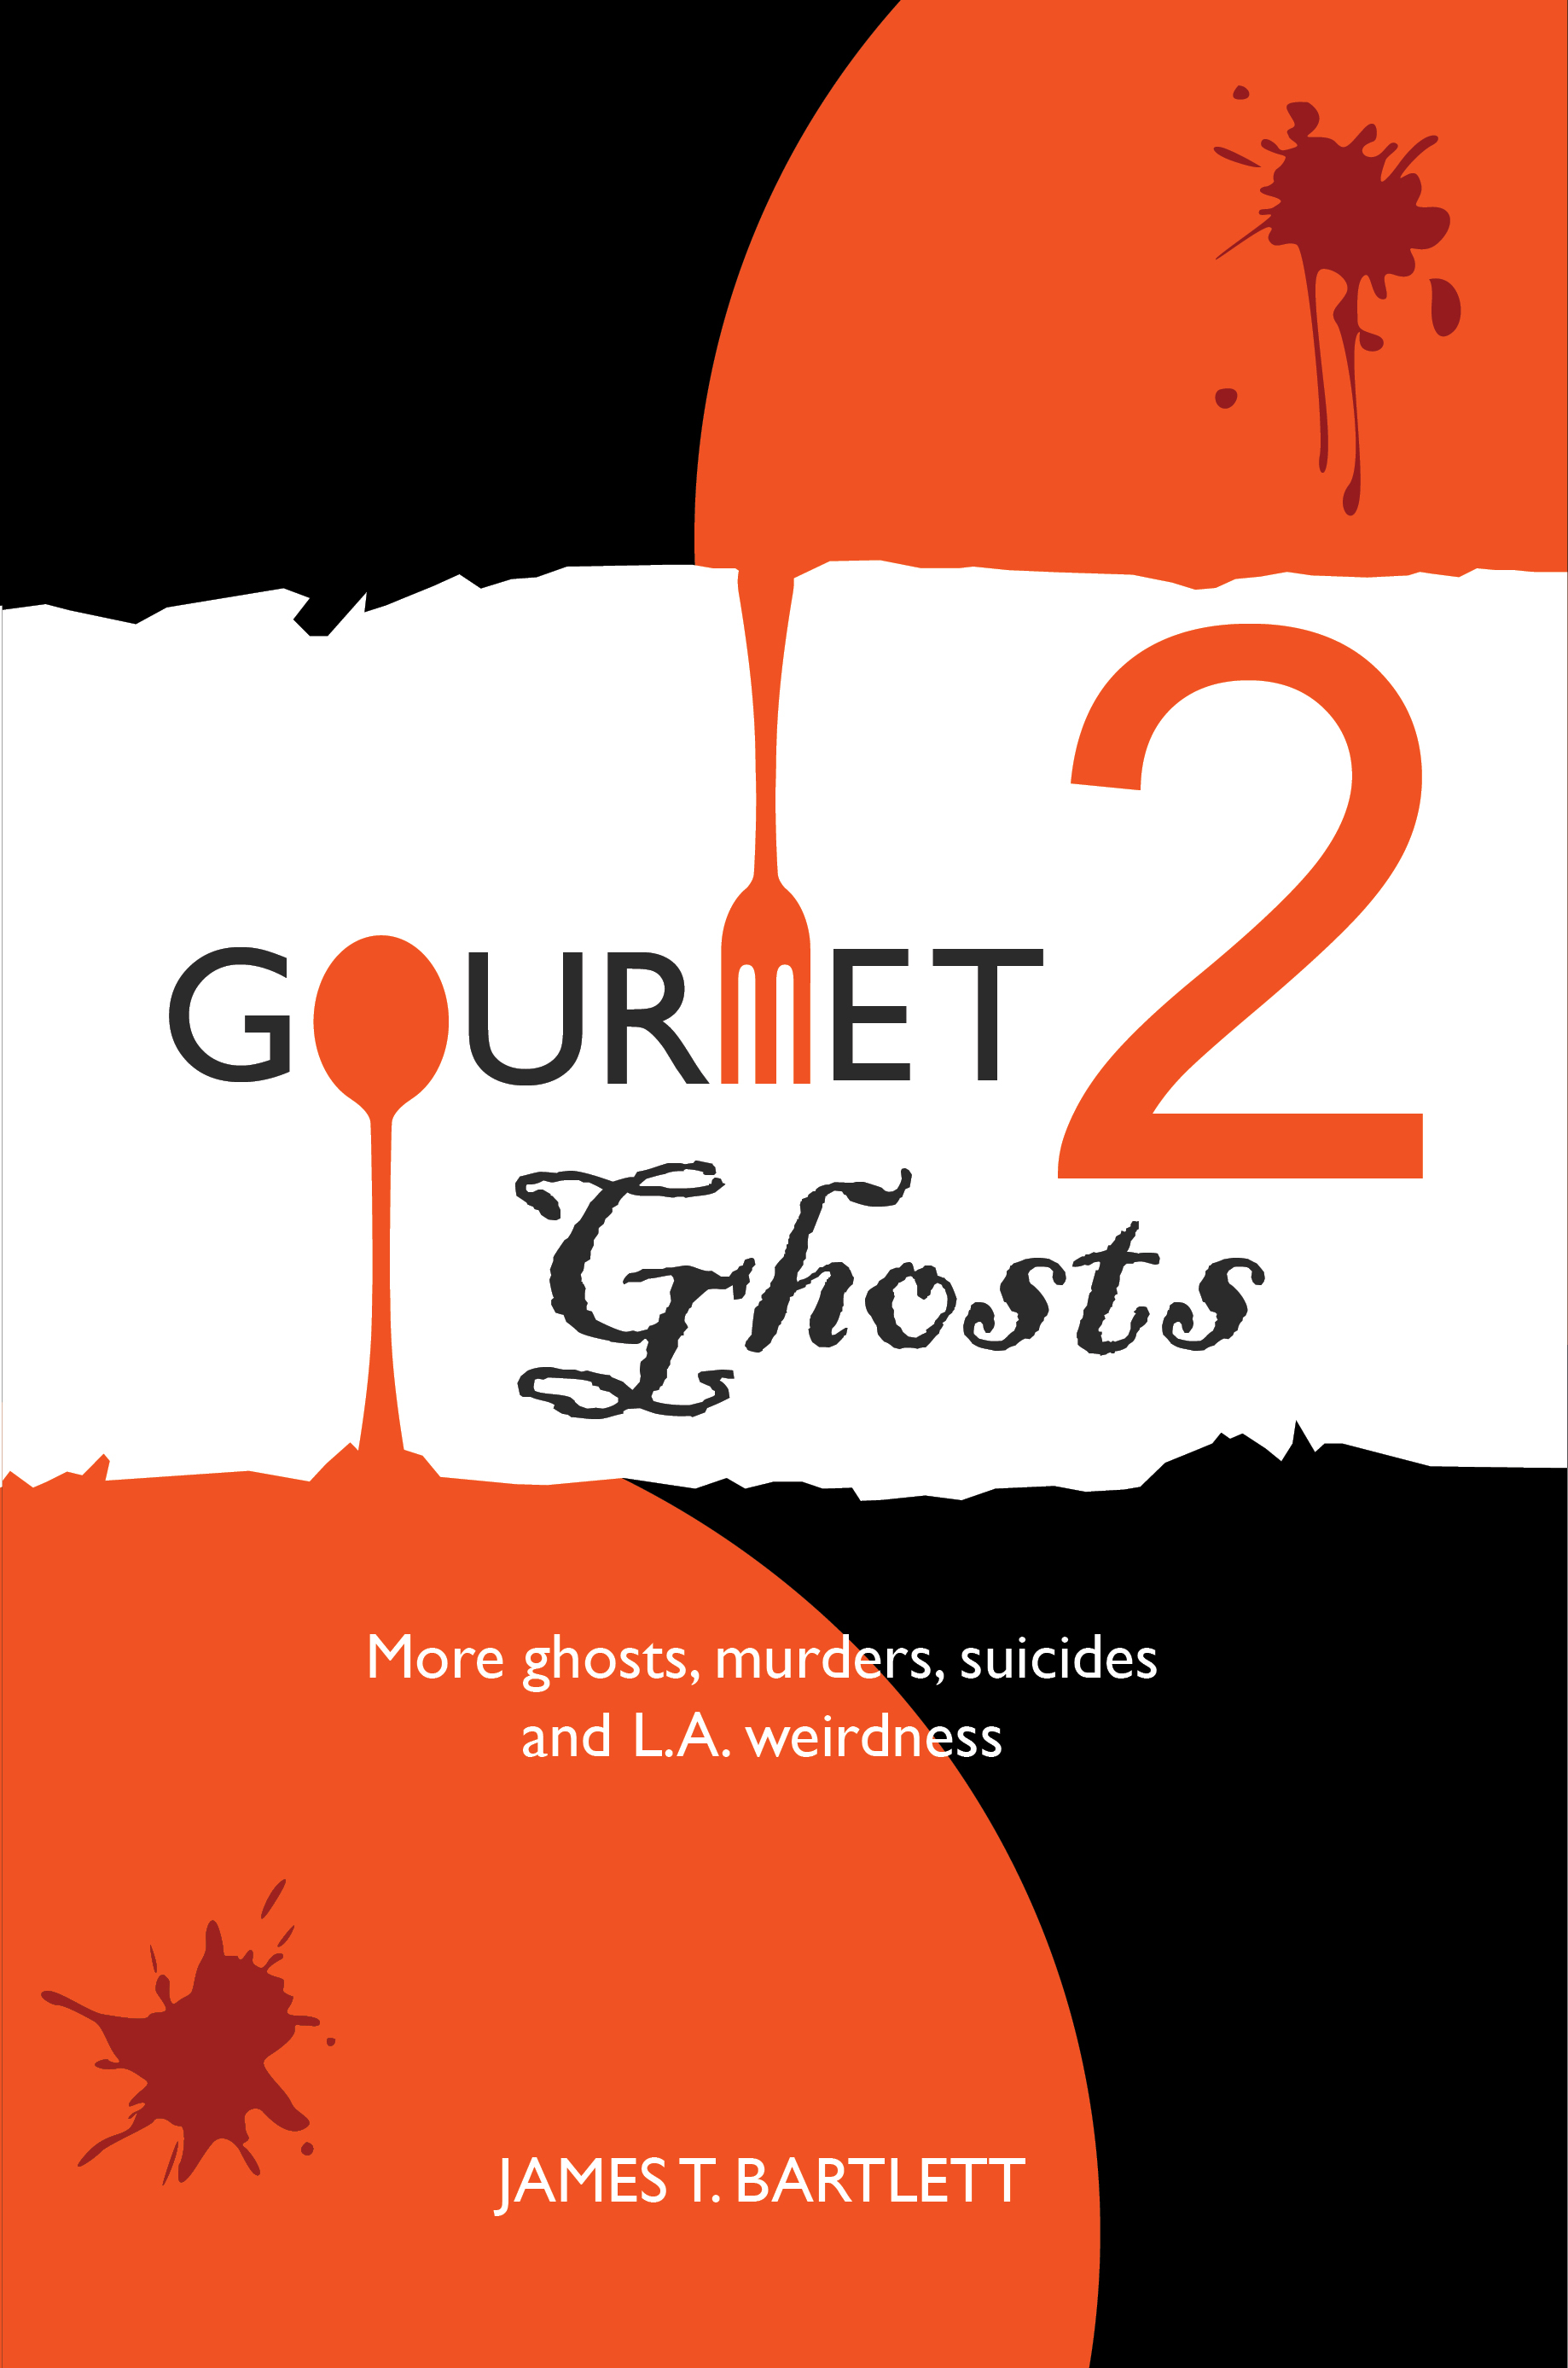 gourmet-ghosts-2-front-cover